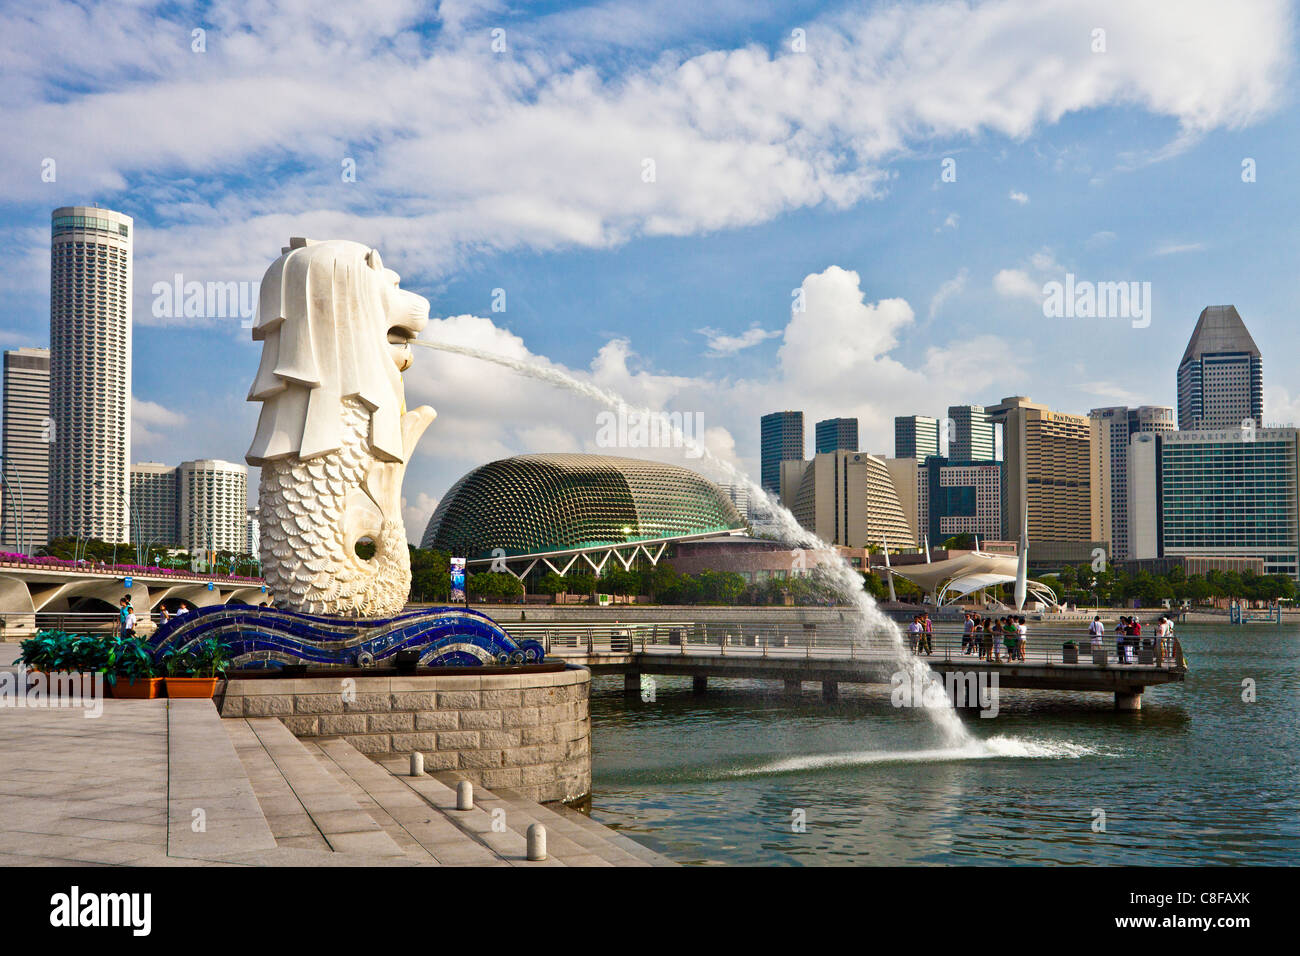 Singapur, Asien, Merlion, Wahrzeichen, Löwe, Meerjungfrau, Skulptur, Wasser Kotze, Spieß, Uferpromenade, Stockbild